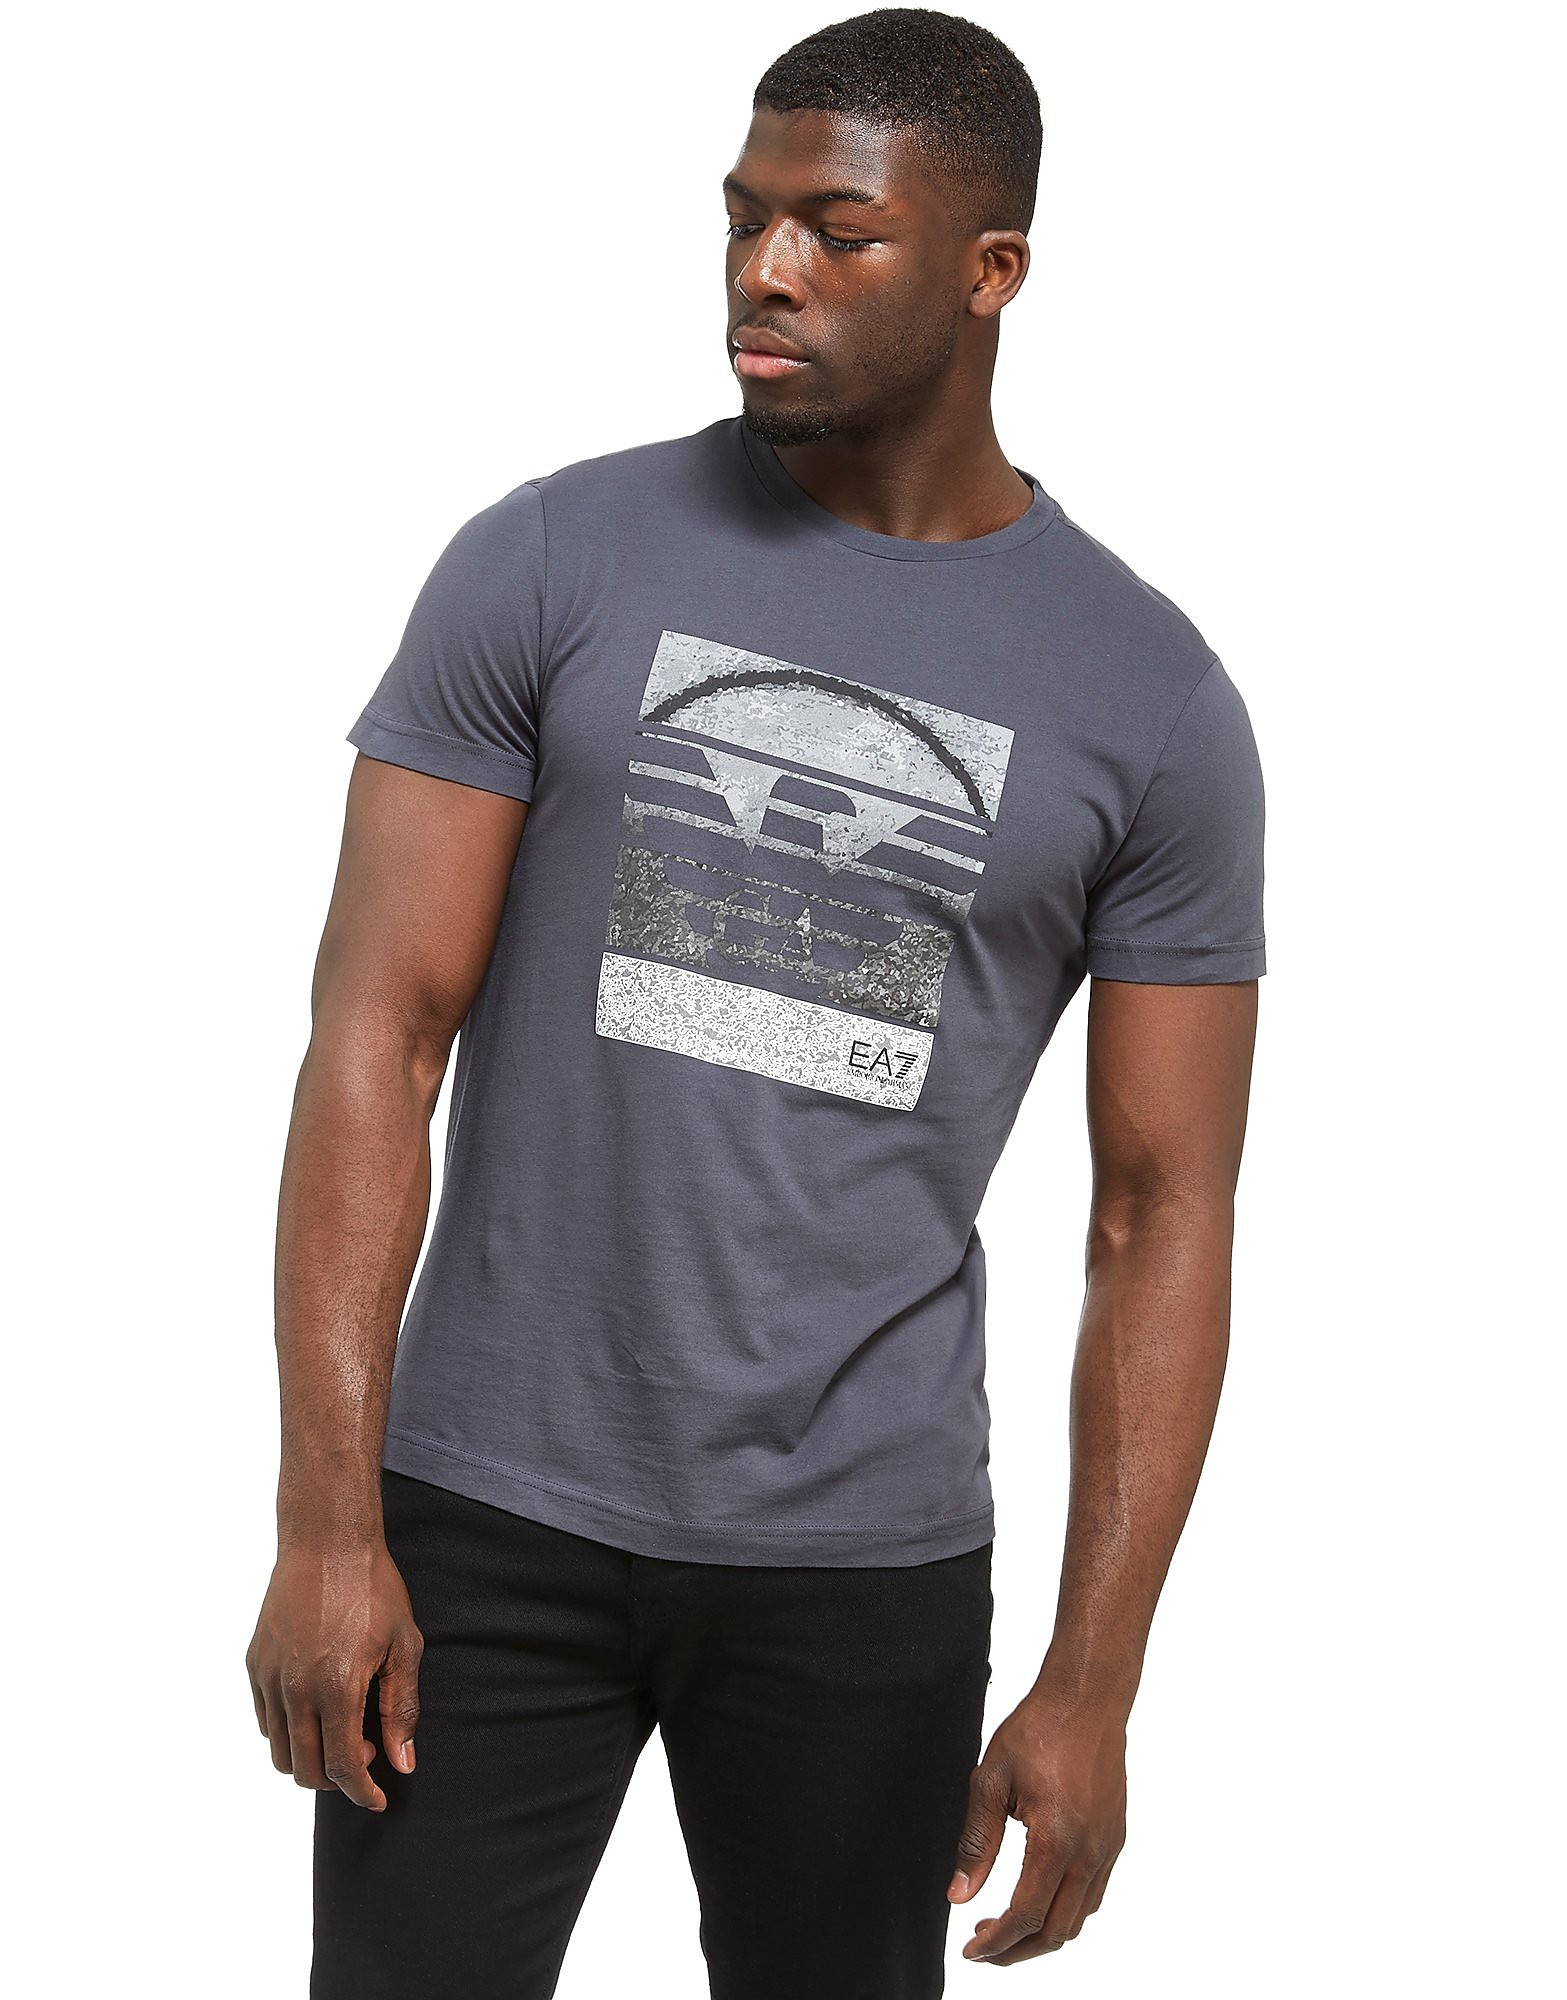 Emporio Armani EA7 Box Eagle T-Shirt